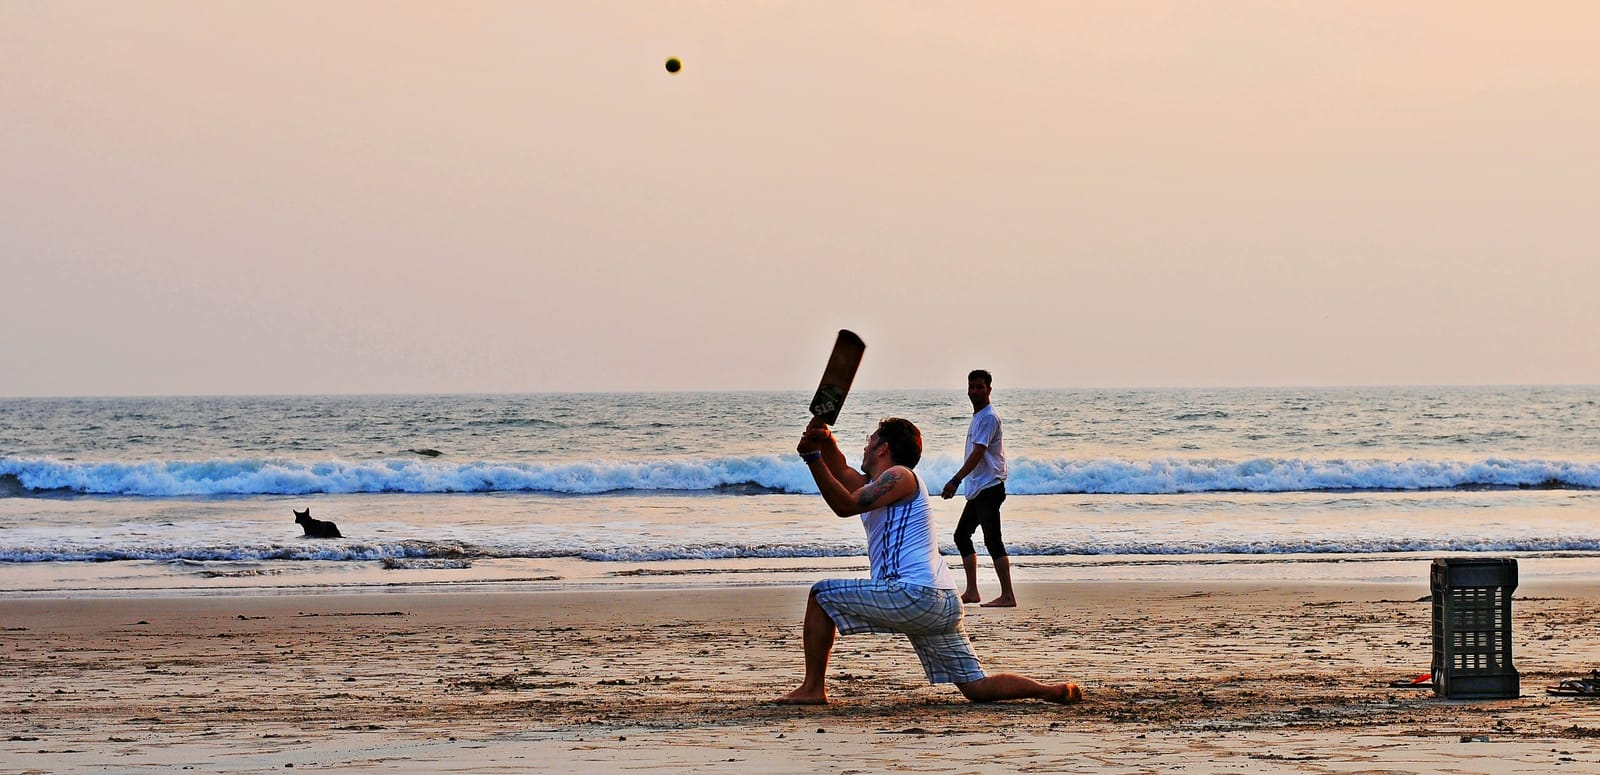 1492154007_beach_cricket_at_goa.jpg